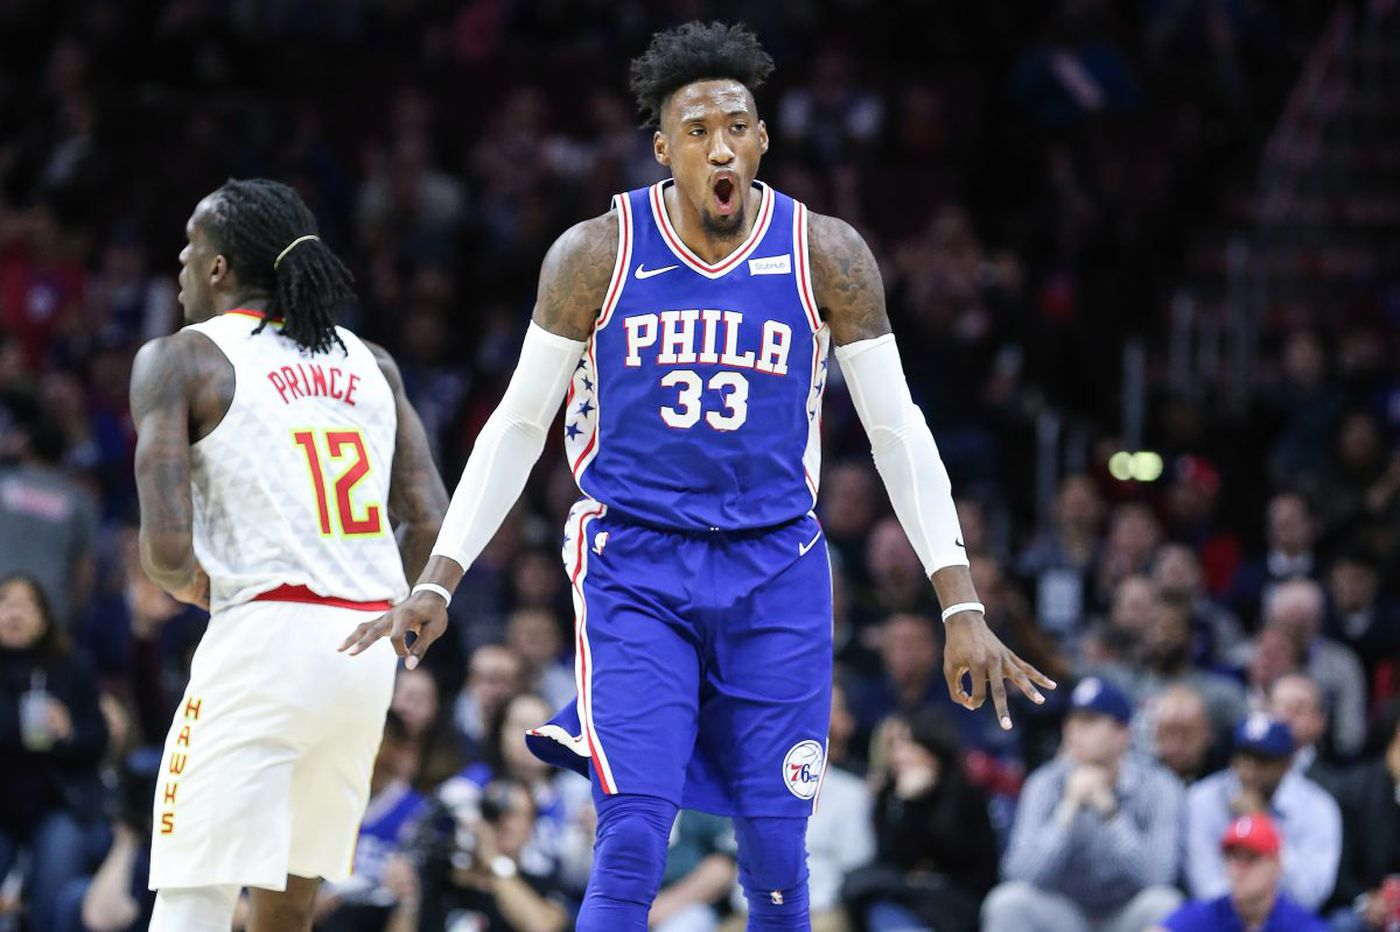 Sixers-Pacers preview: Solving Indiana's defense